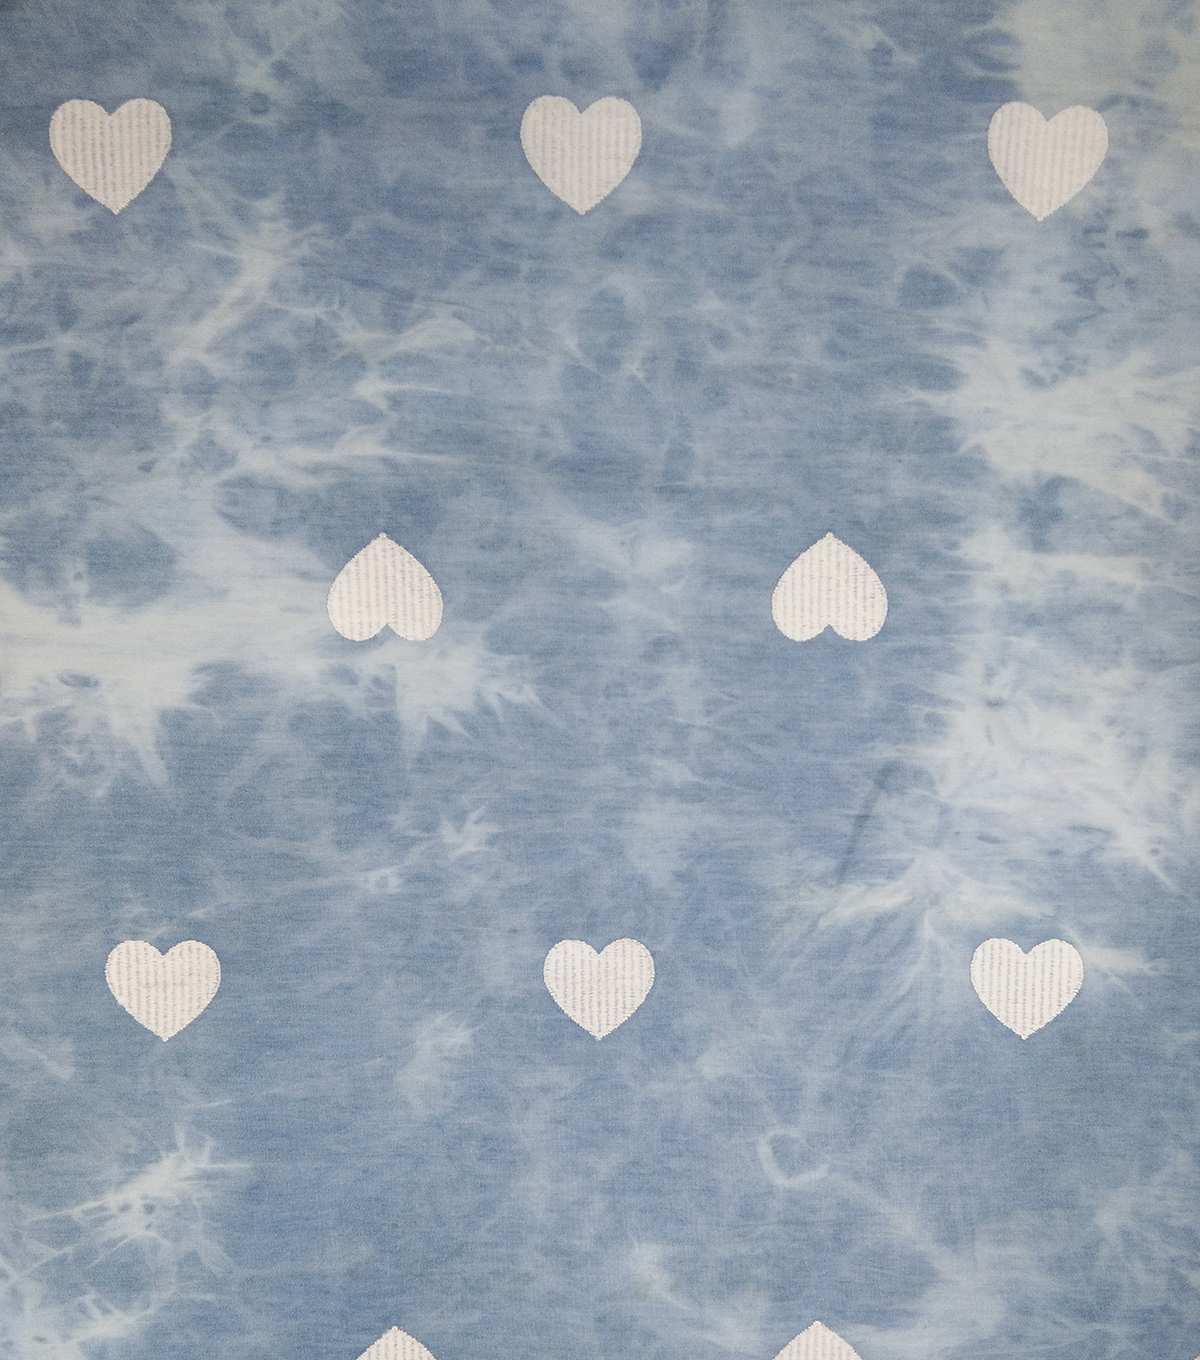 Demim Medium Wash Cotton Fabric-Embroidery Heart Tie Dye